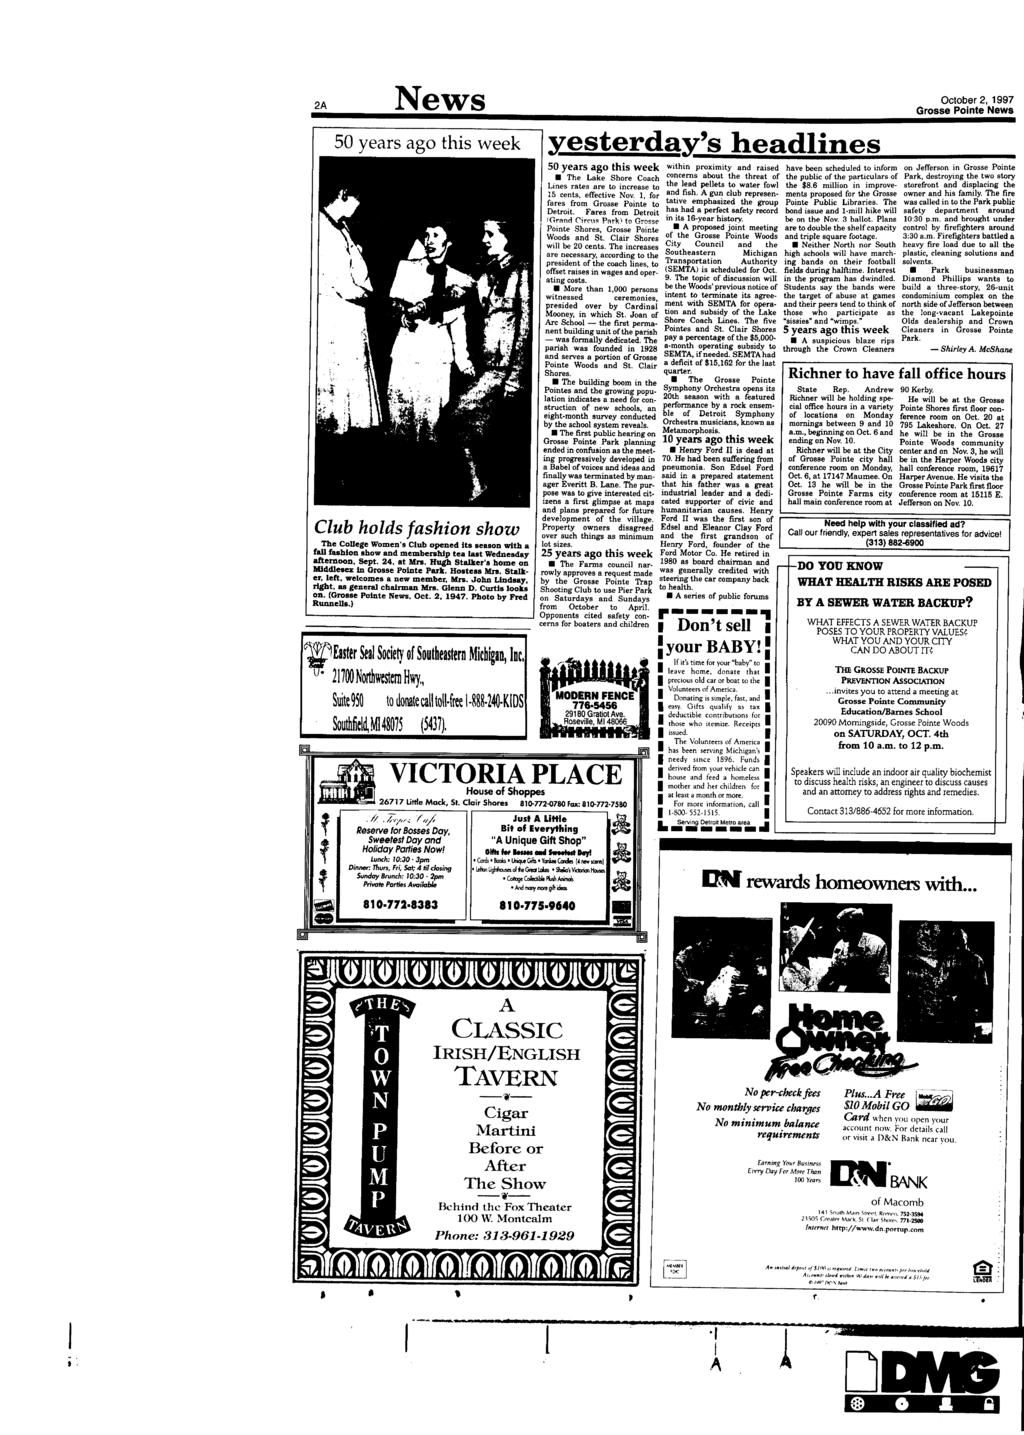 Iilc see skateboards pdf 2a news october 2 1997 grosse pointe news 50 years ago thisveek club fandeluxe Image collections